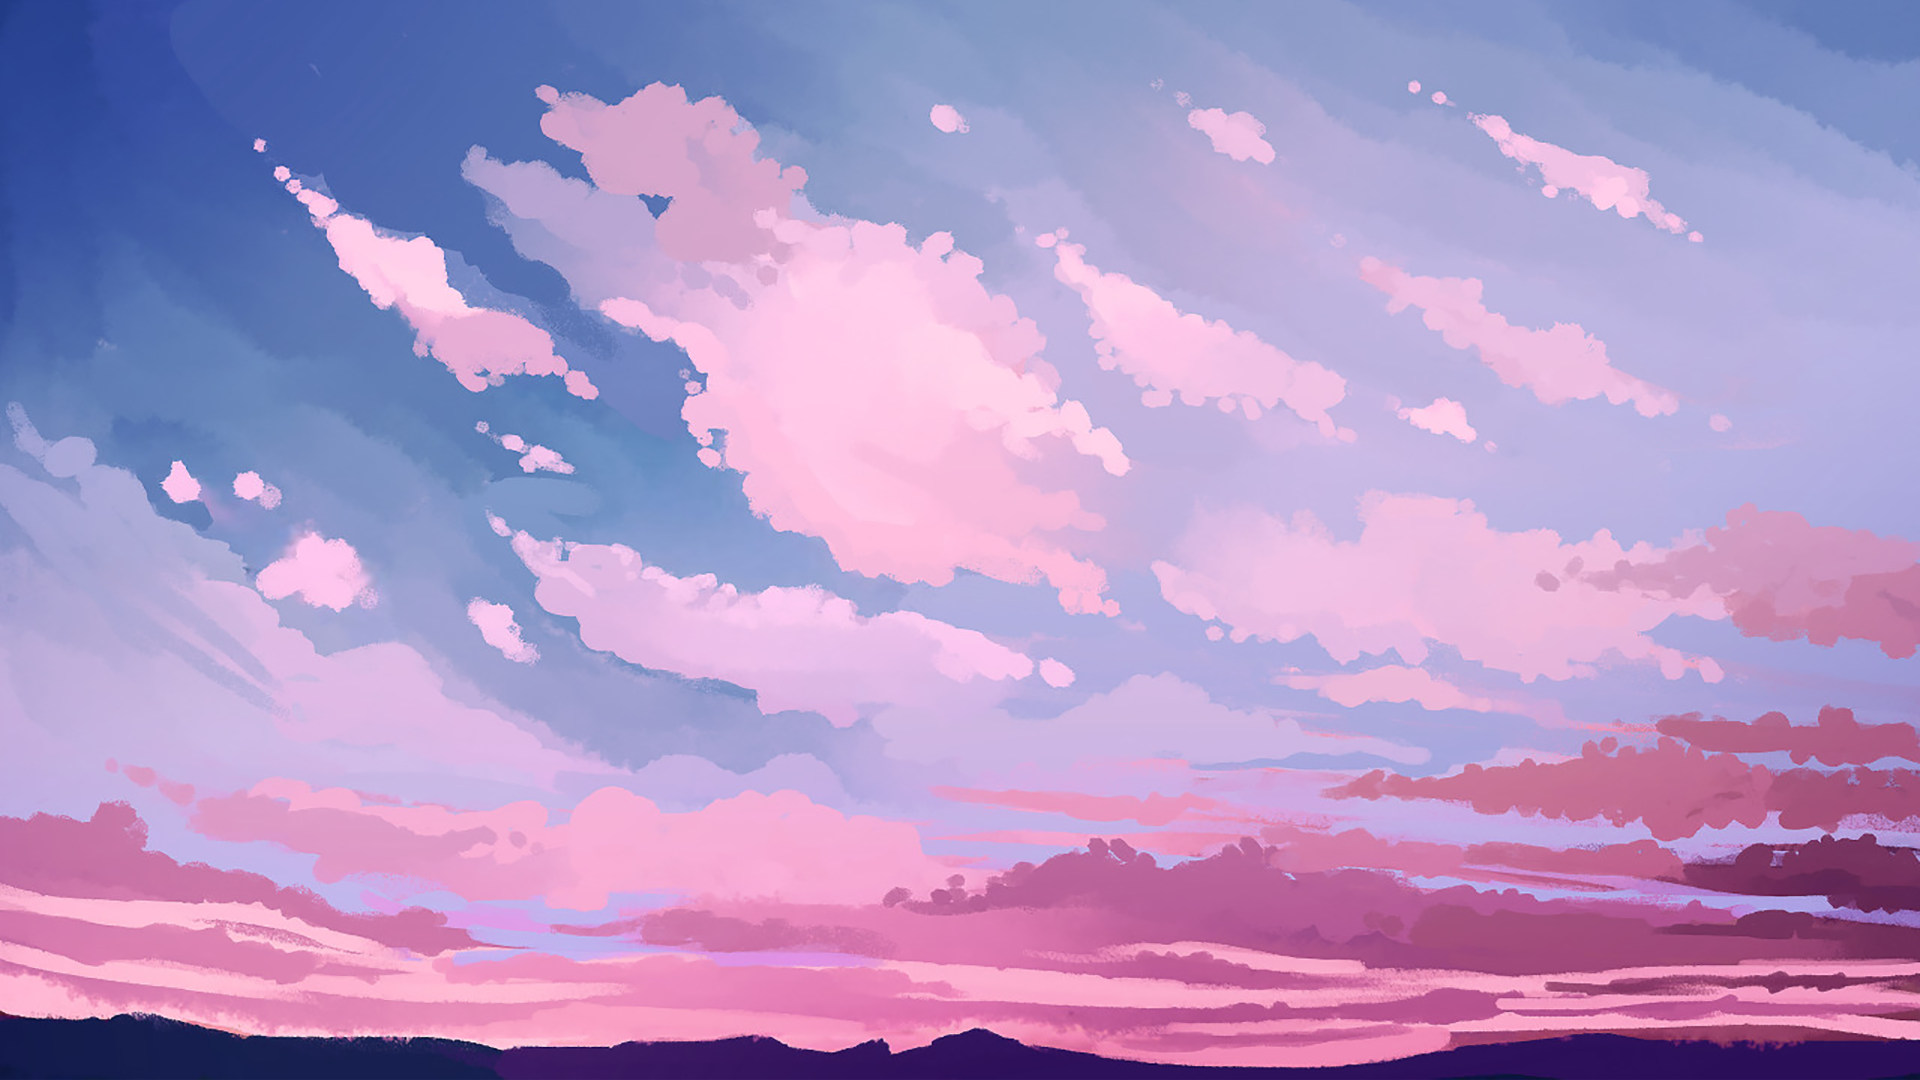 Sky Aesthetic Computer Wallpapers - Wallpaper Cave